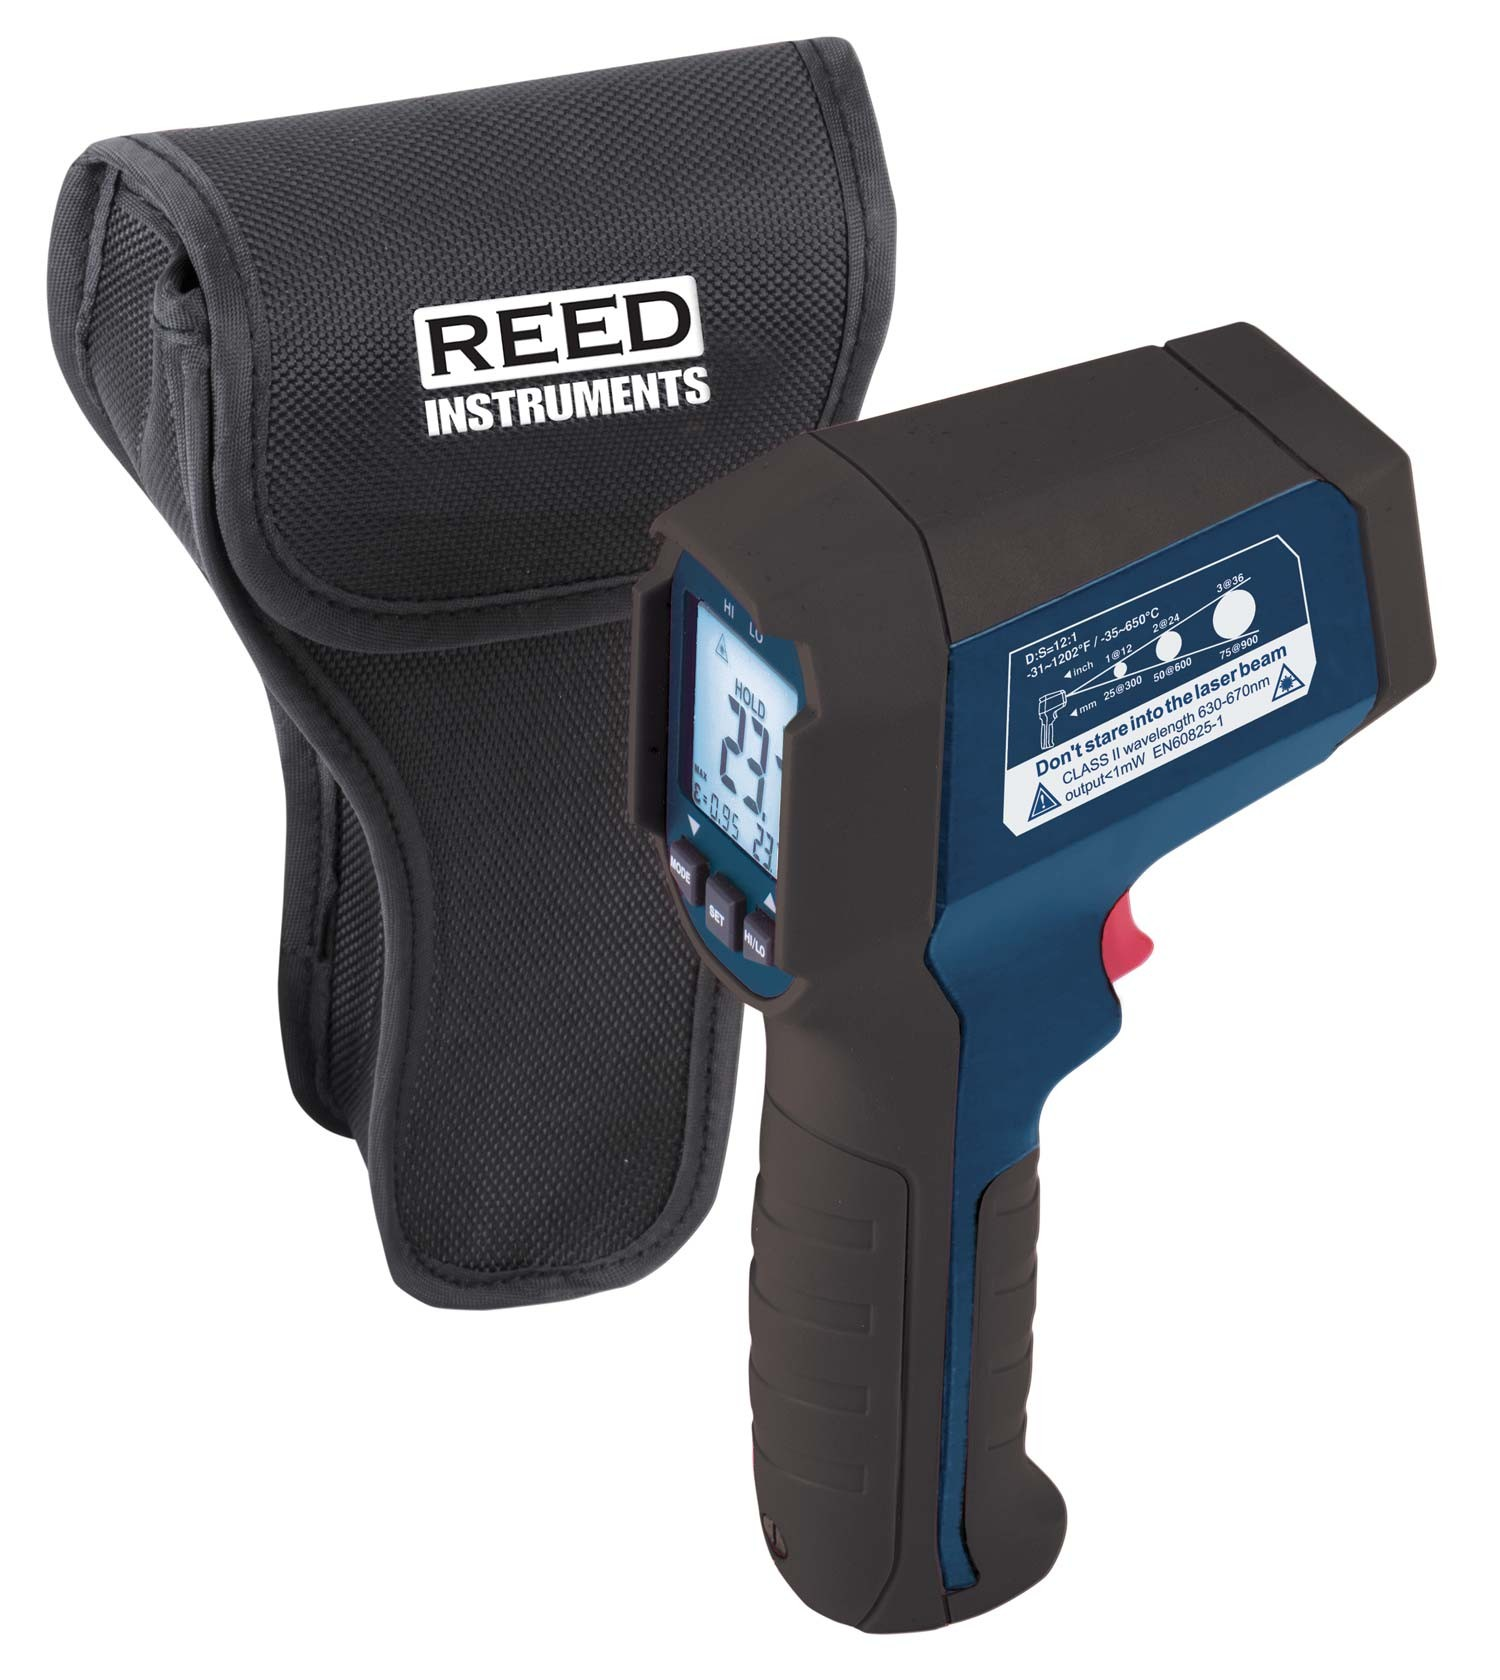 REED R2310 Infrared Thermometer, 12:1, 1202°F (650°C)-Included